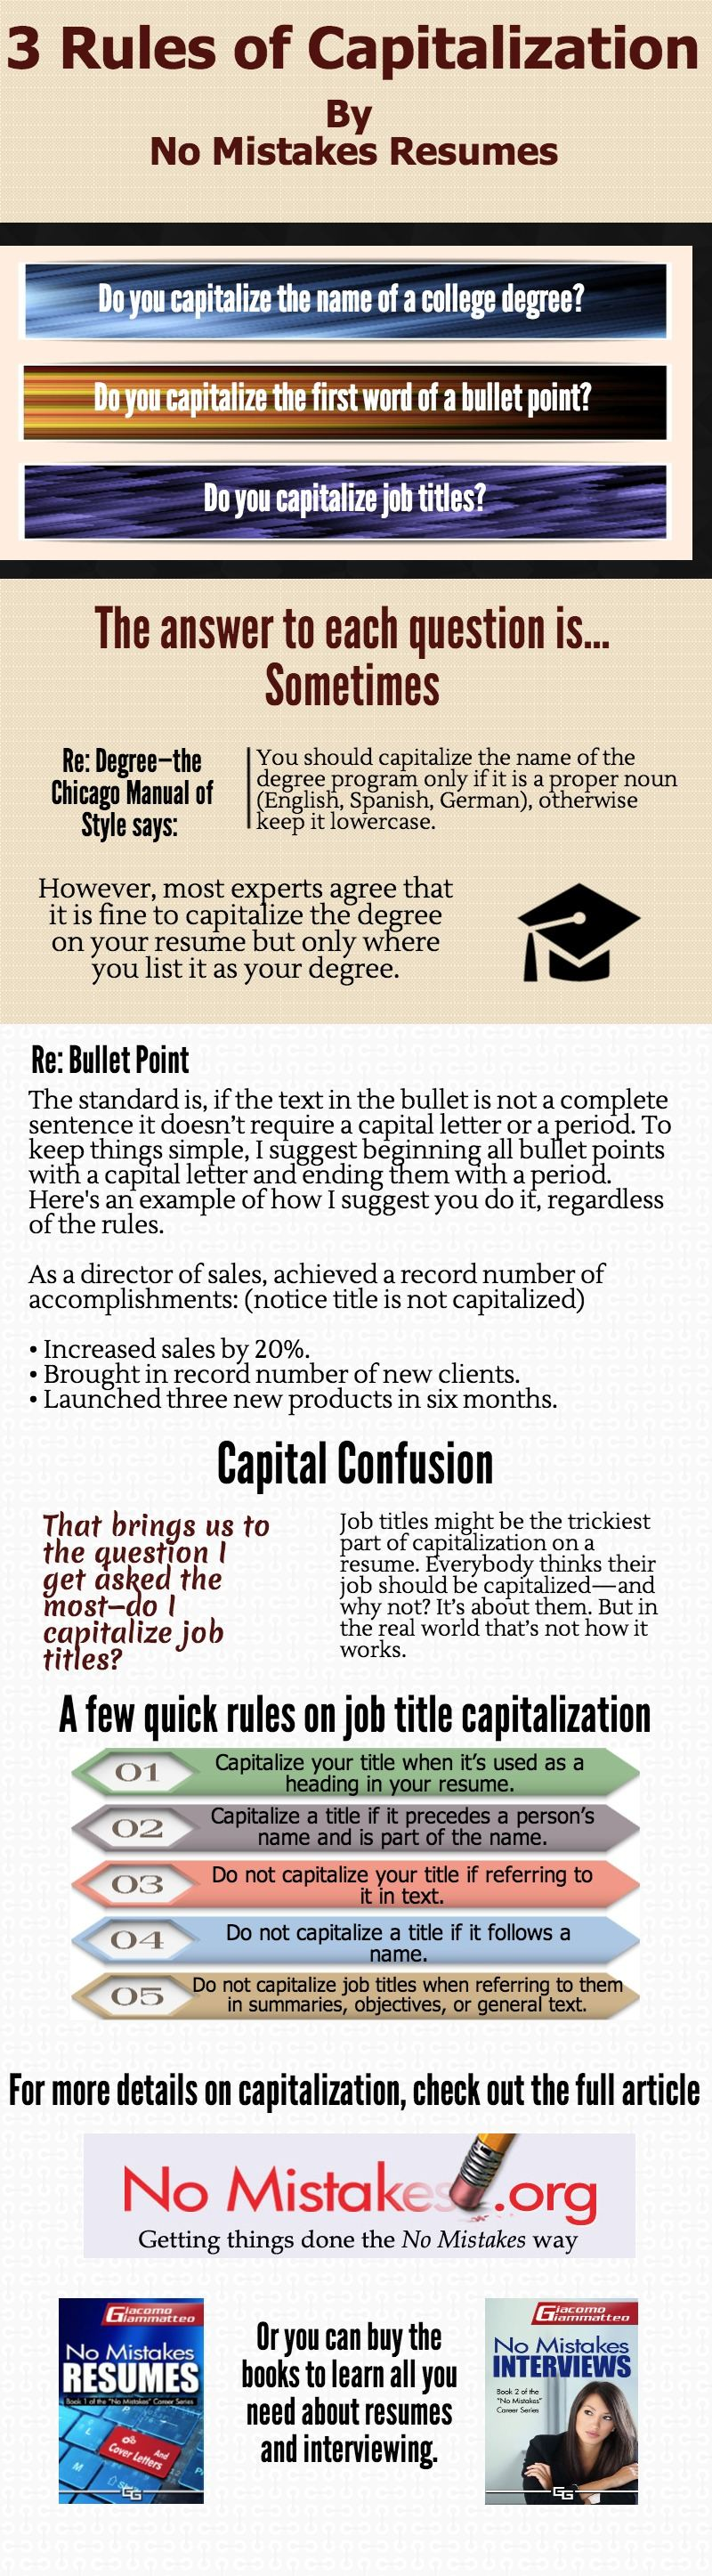 3 rules for capitalization on resumes